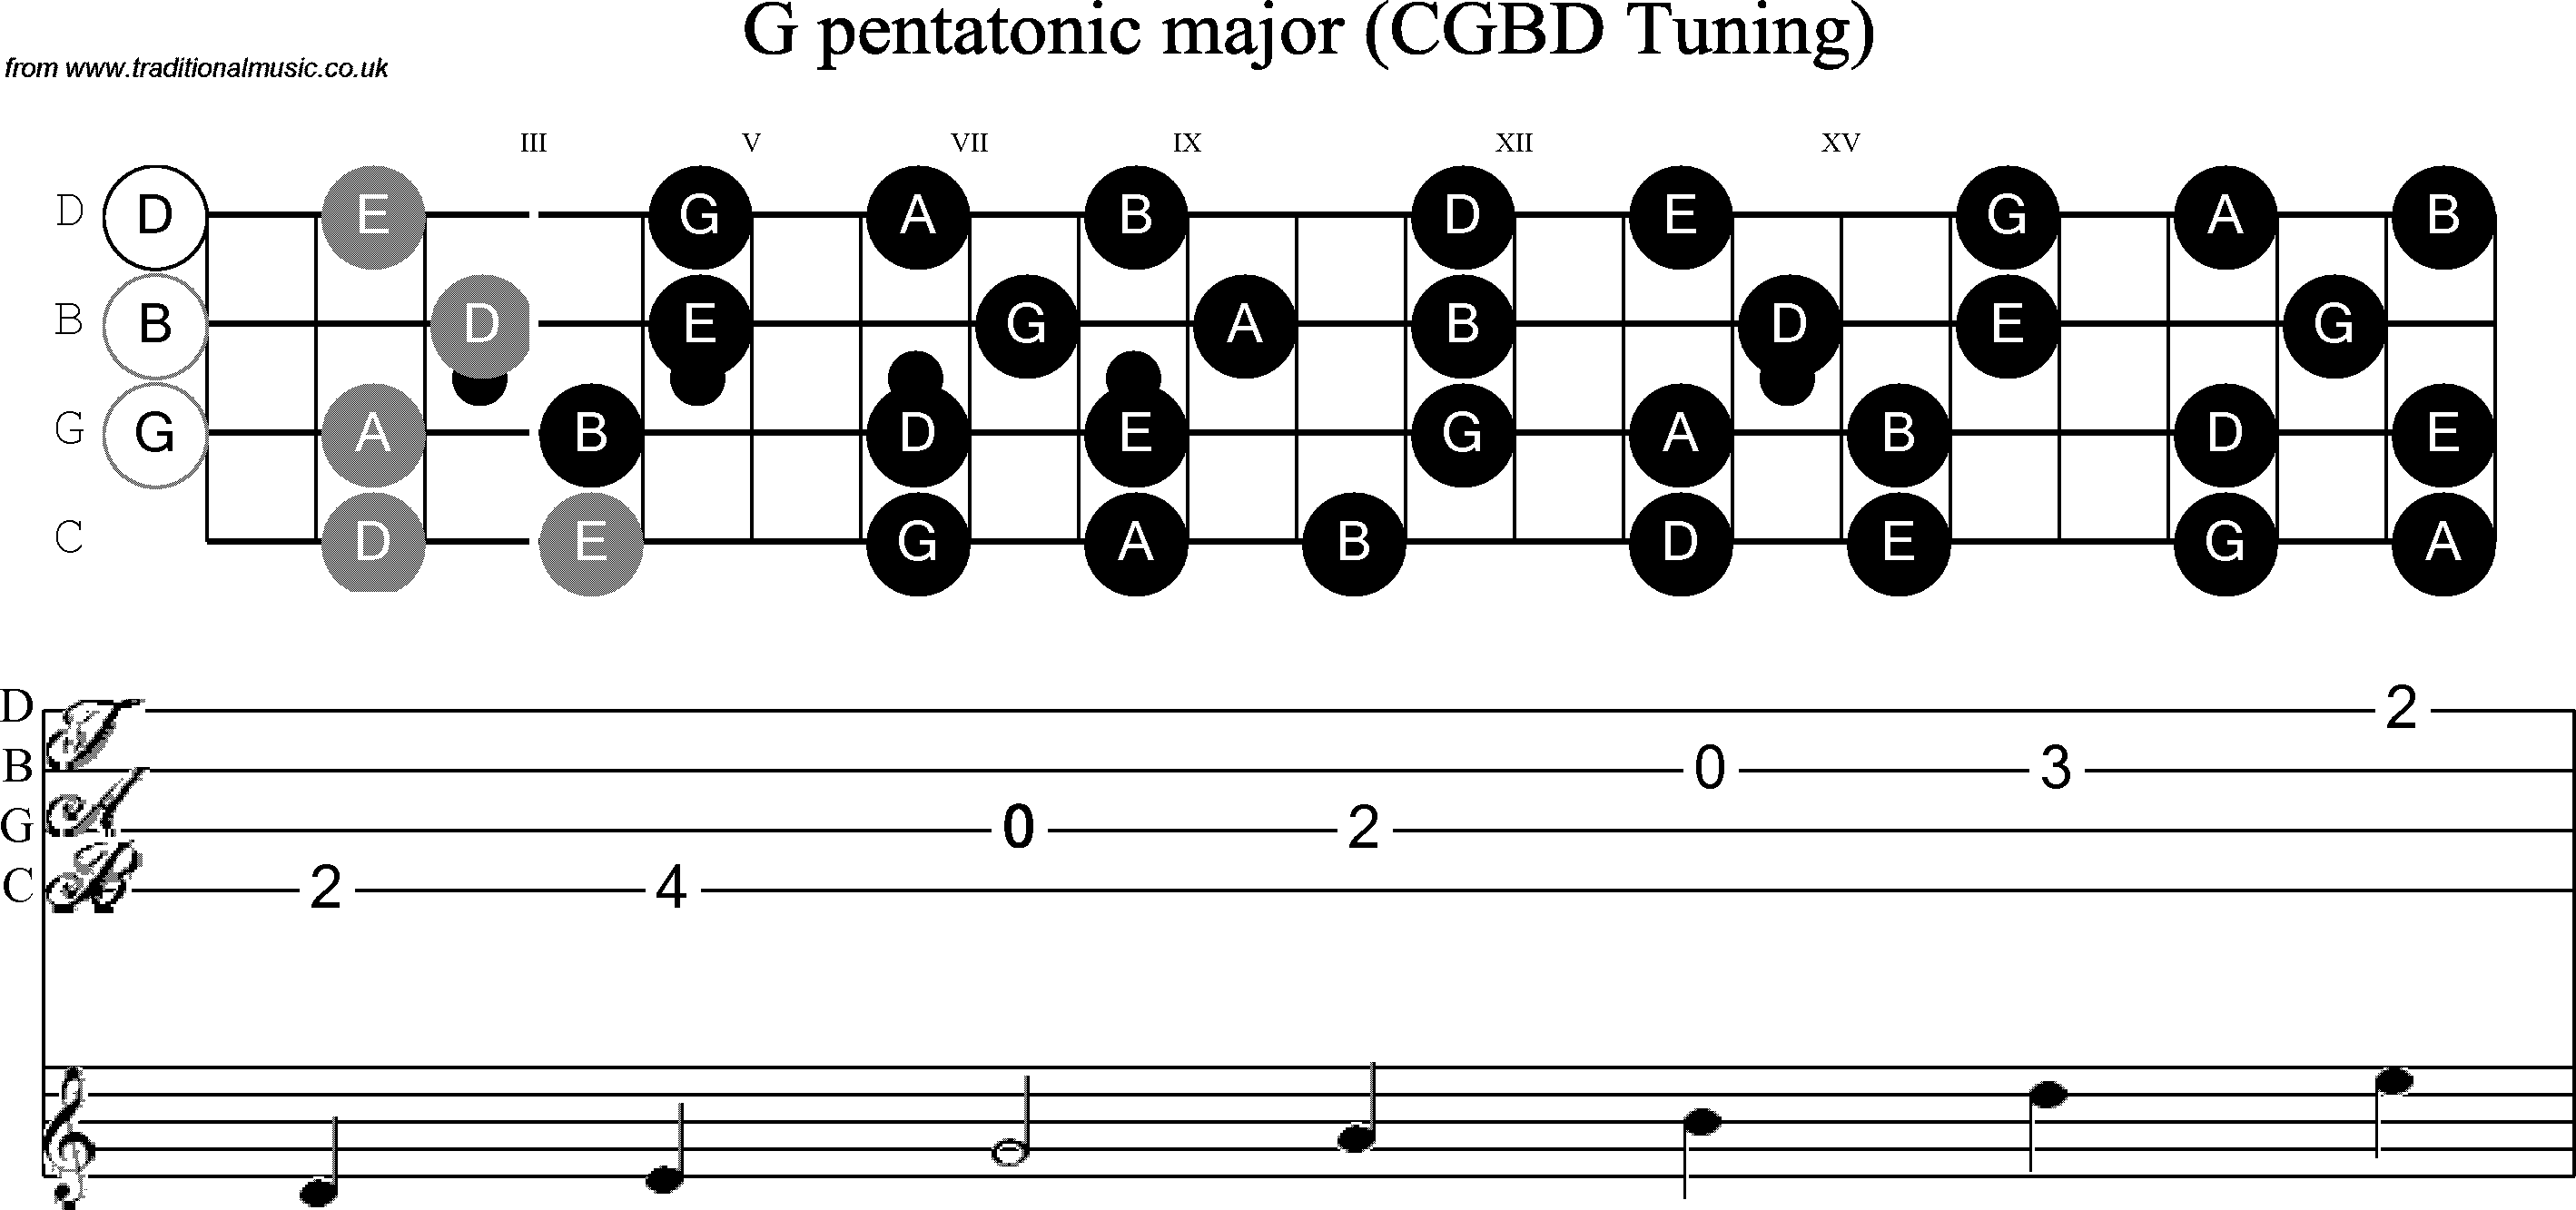 Banjo Major Scale submited images.